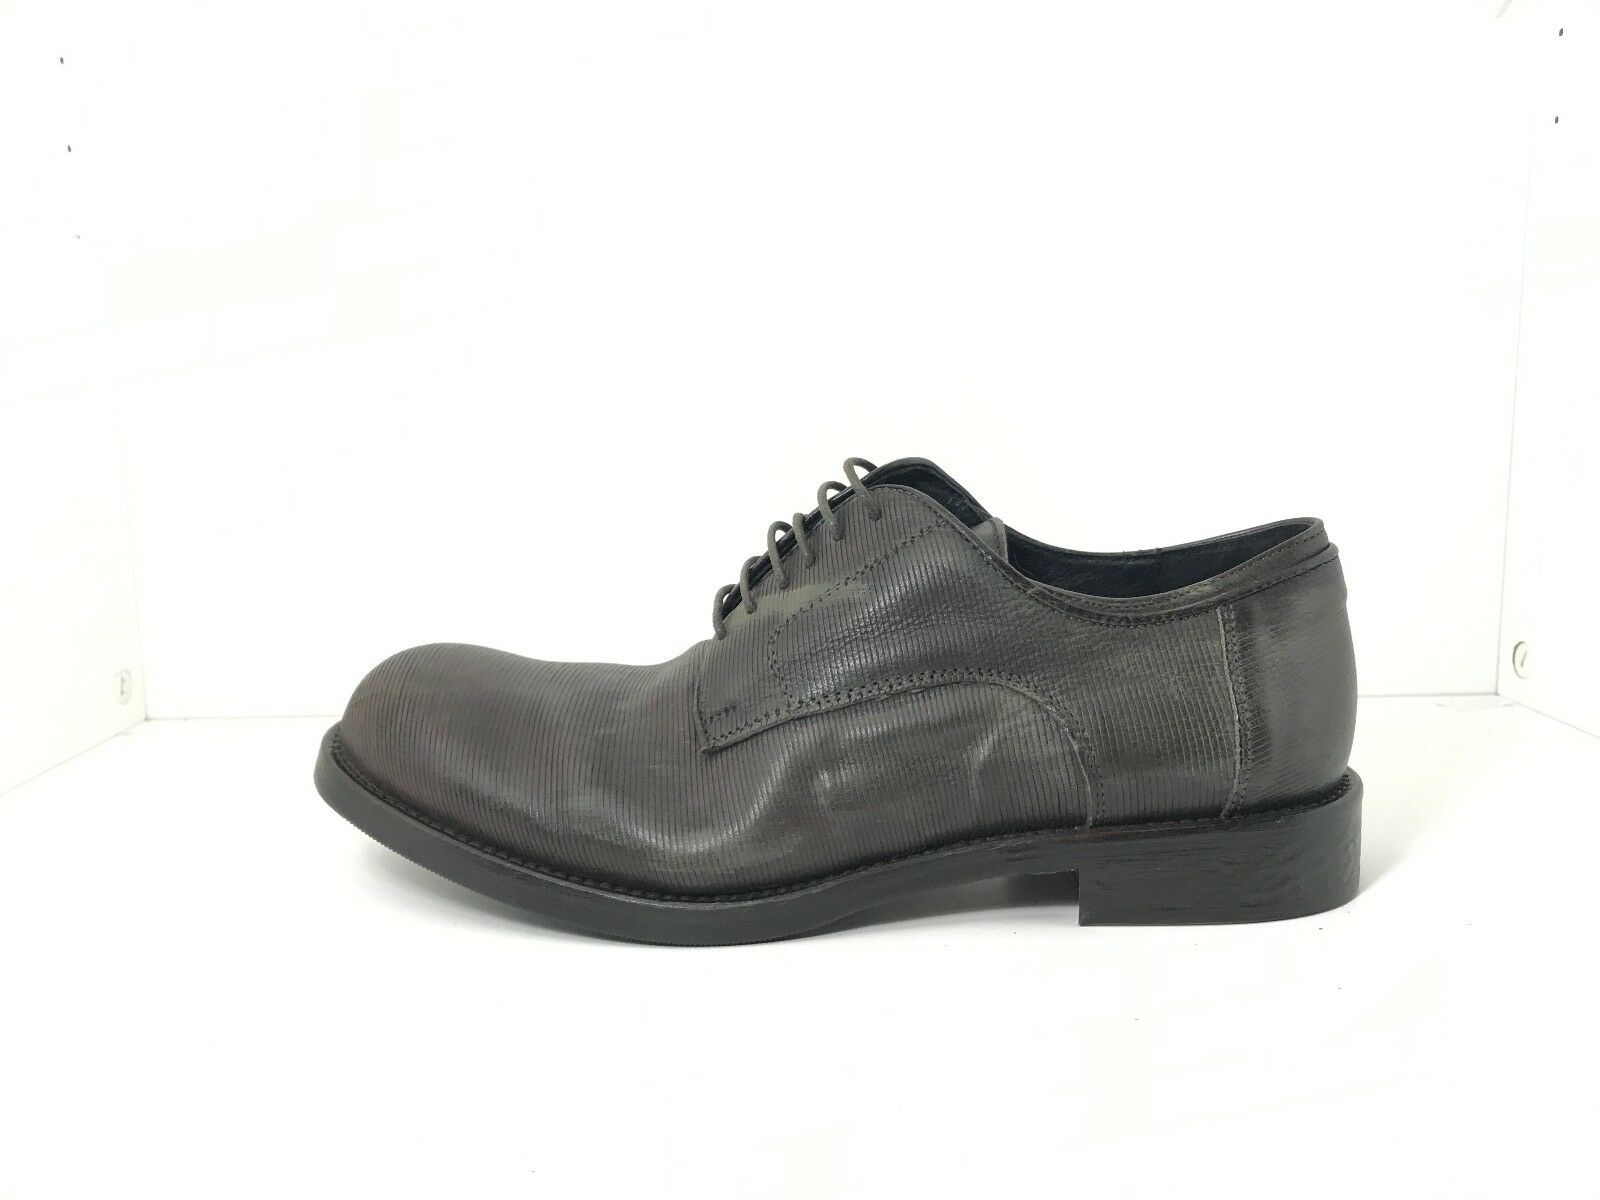 Prem1um shoes scarpe made pelle in italy uomo man pelle made leather 100% casual classic c21ac3